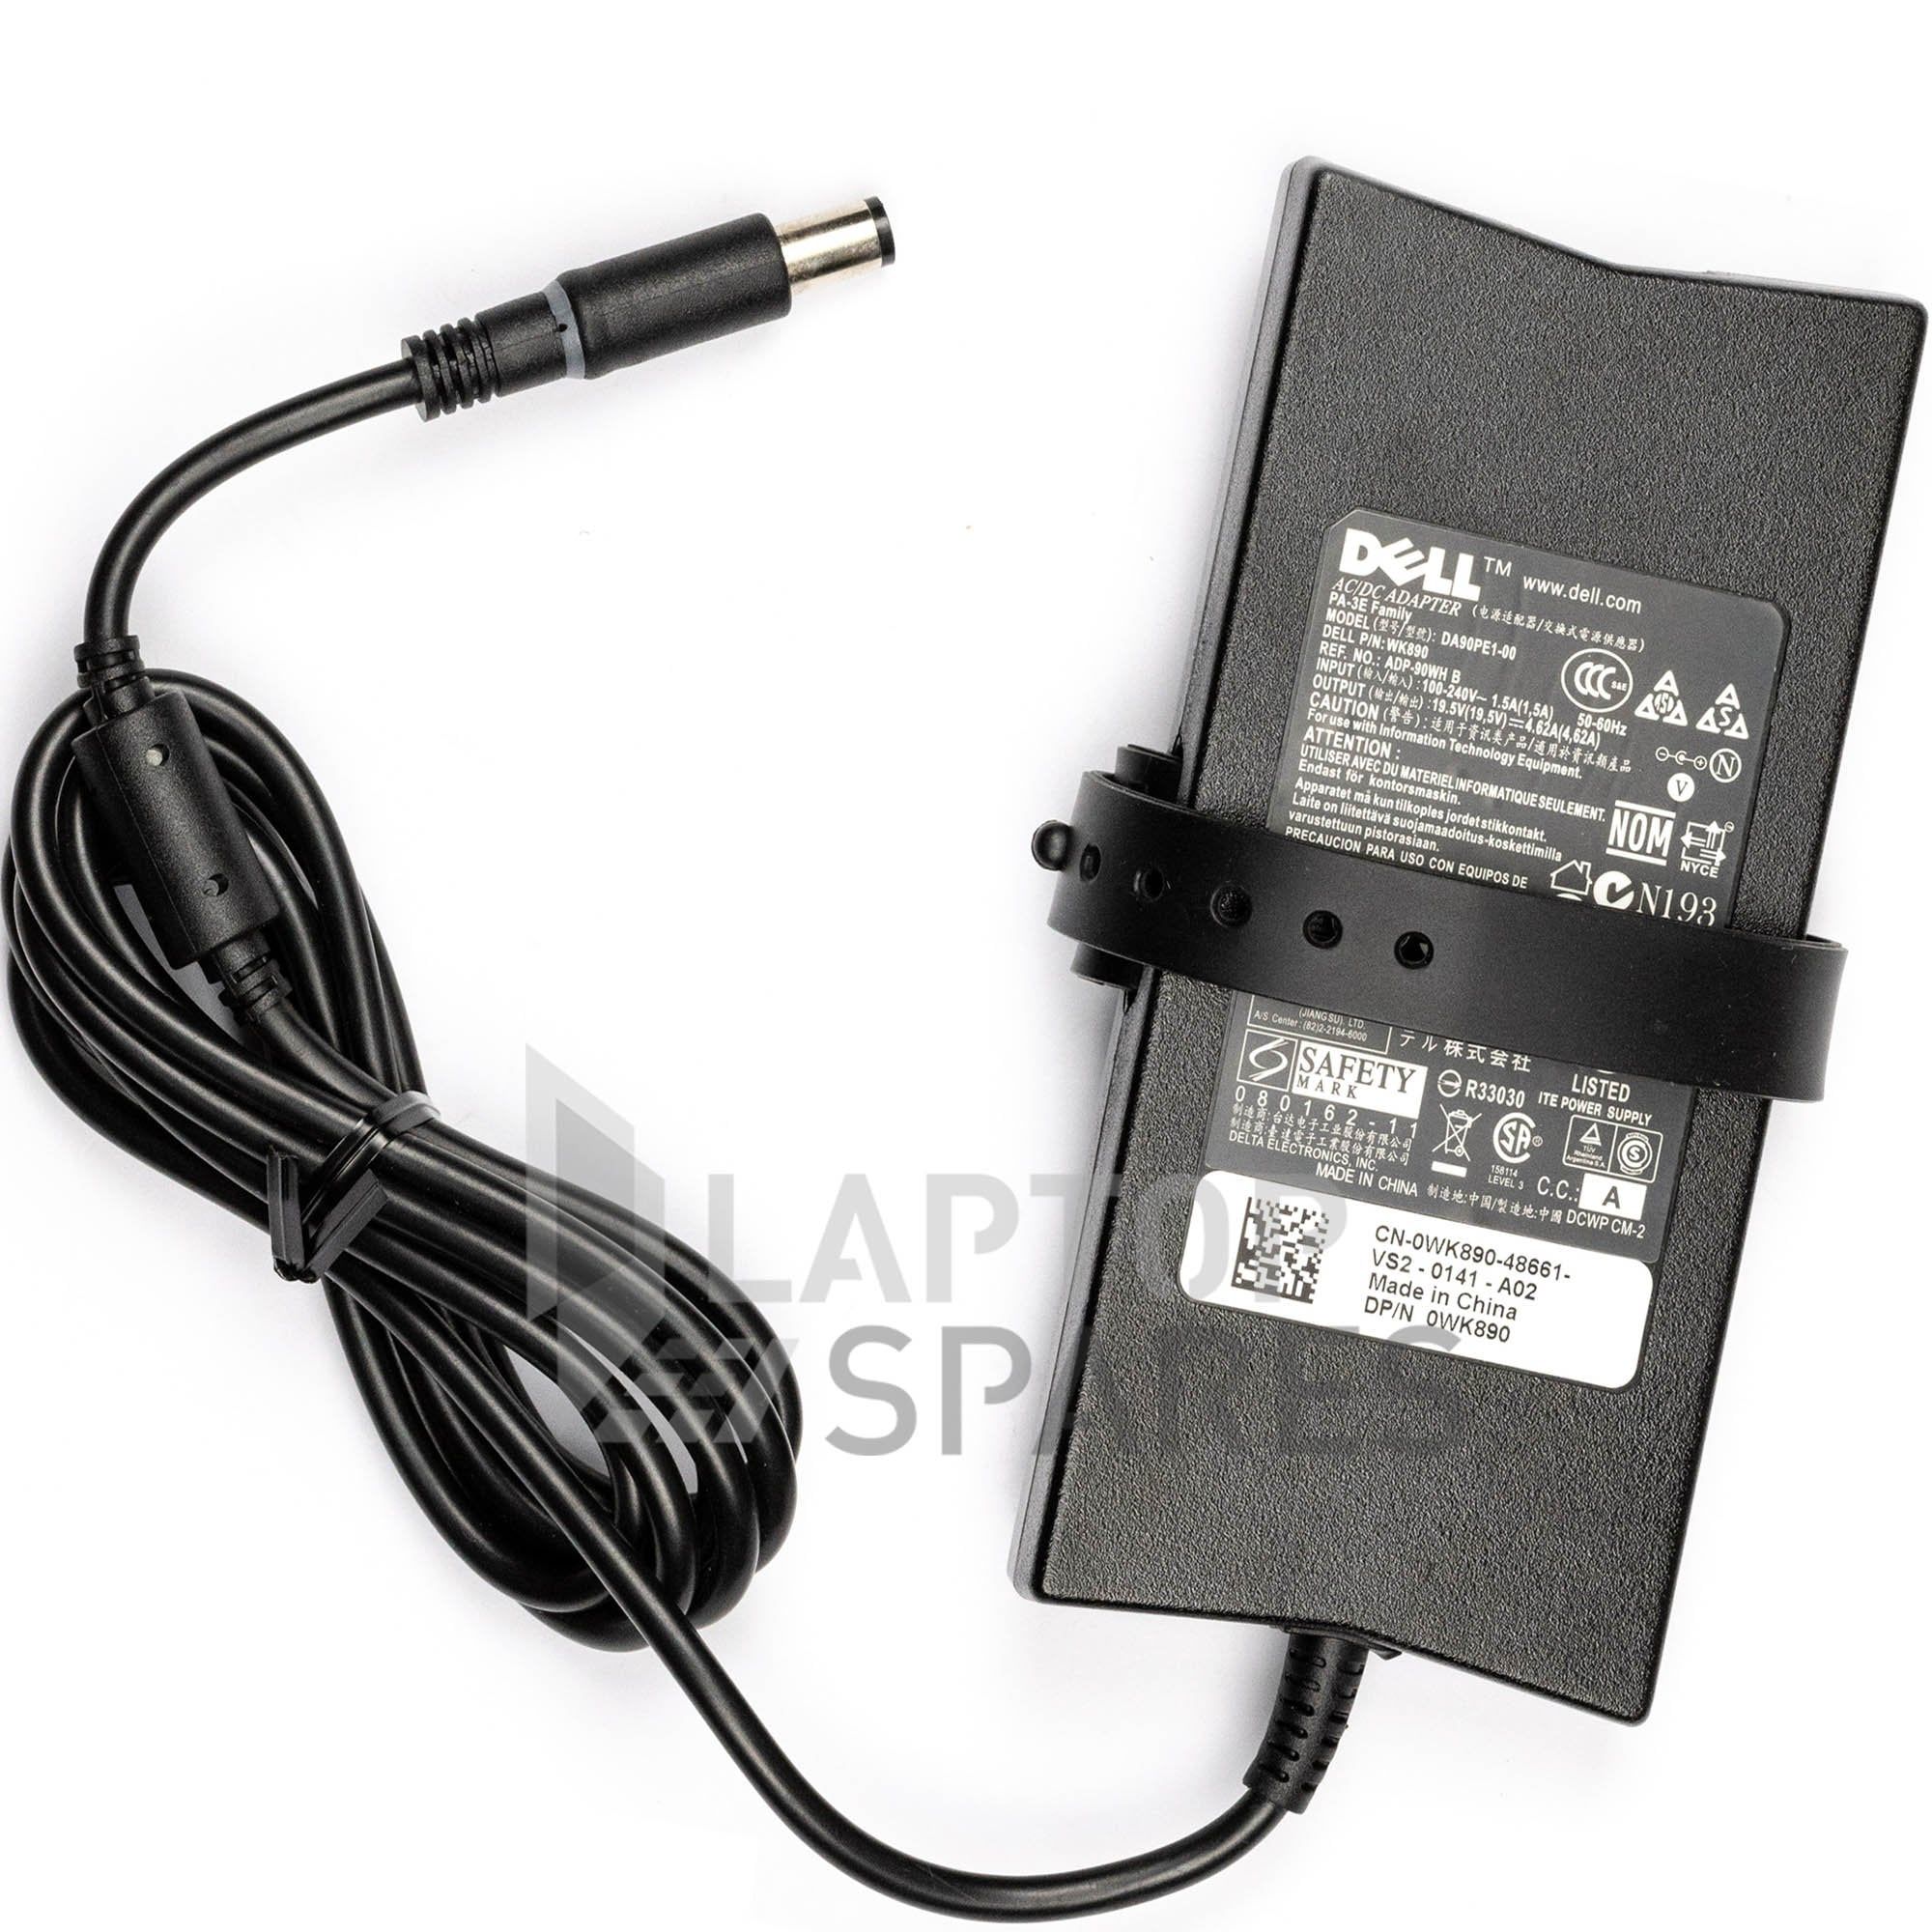 Dell Studio 1535 1536 1537 Laptop Slim AC Adapter Charger